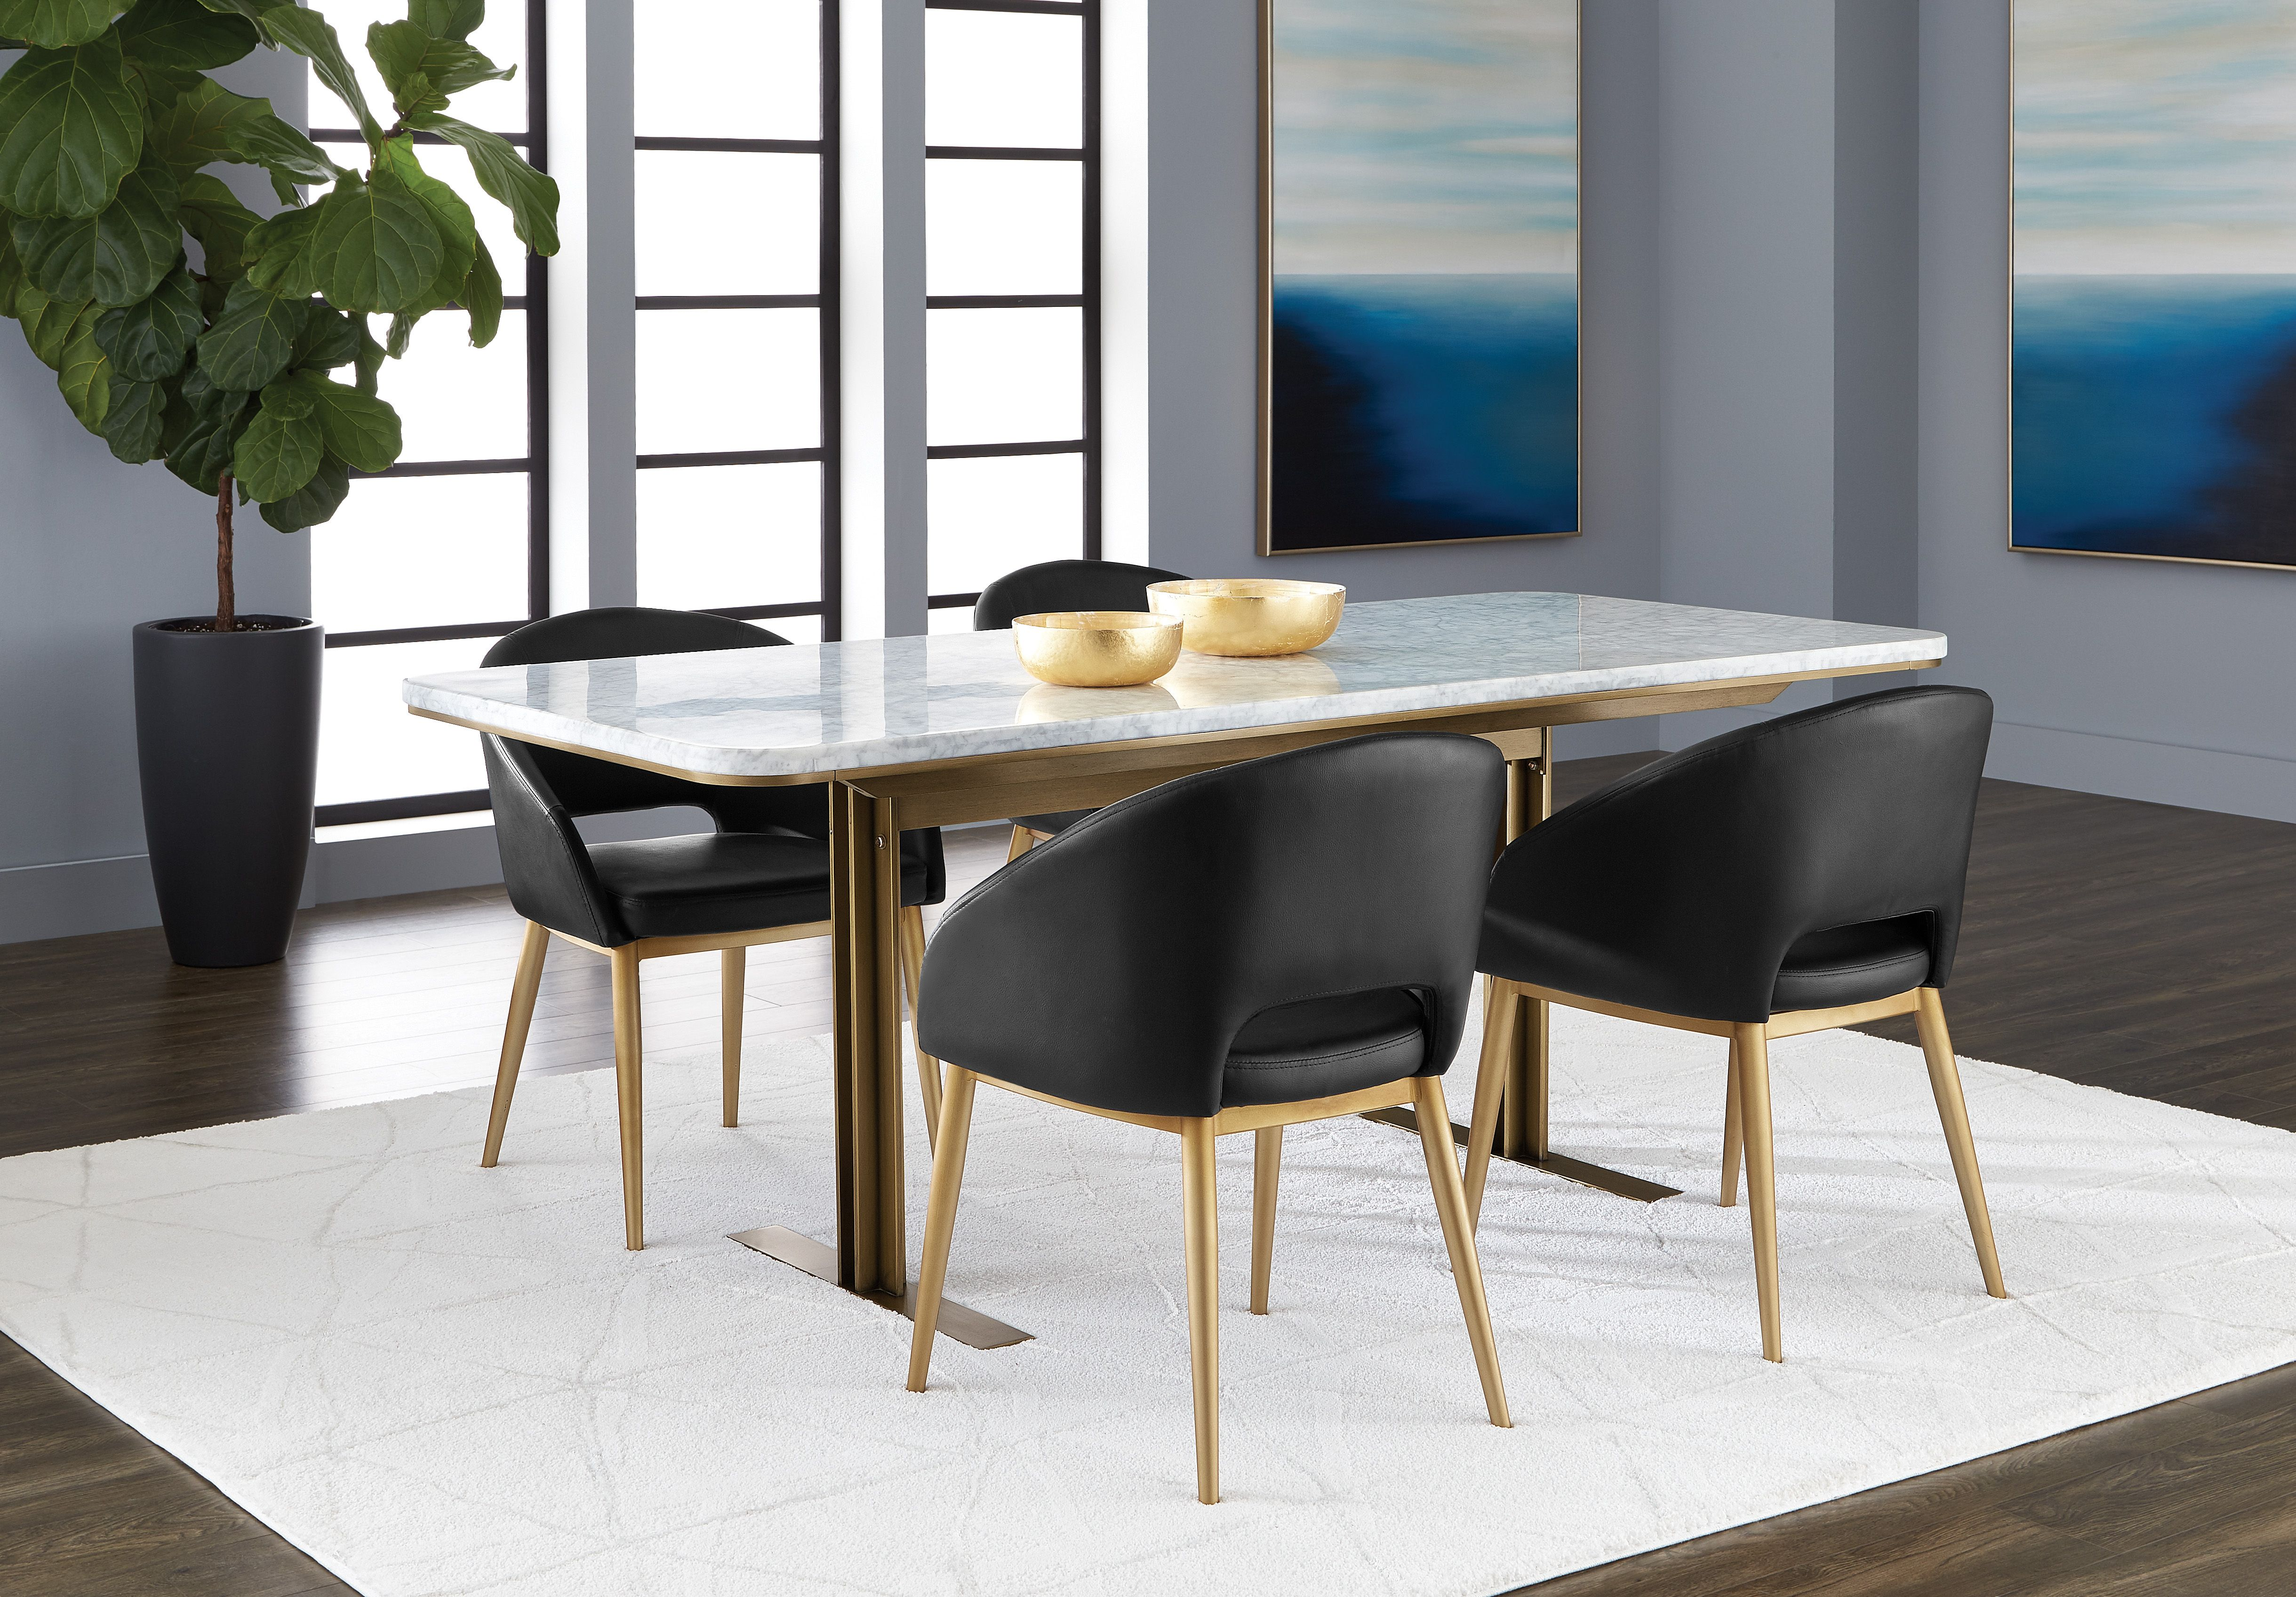 Ambrosia Dining Table White Marble And Antique Brass Frame With